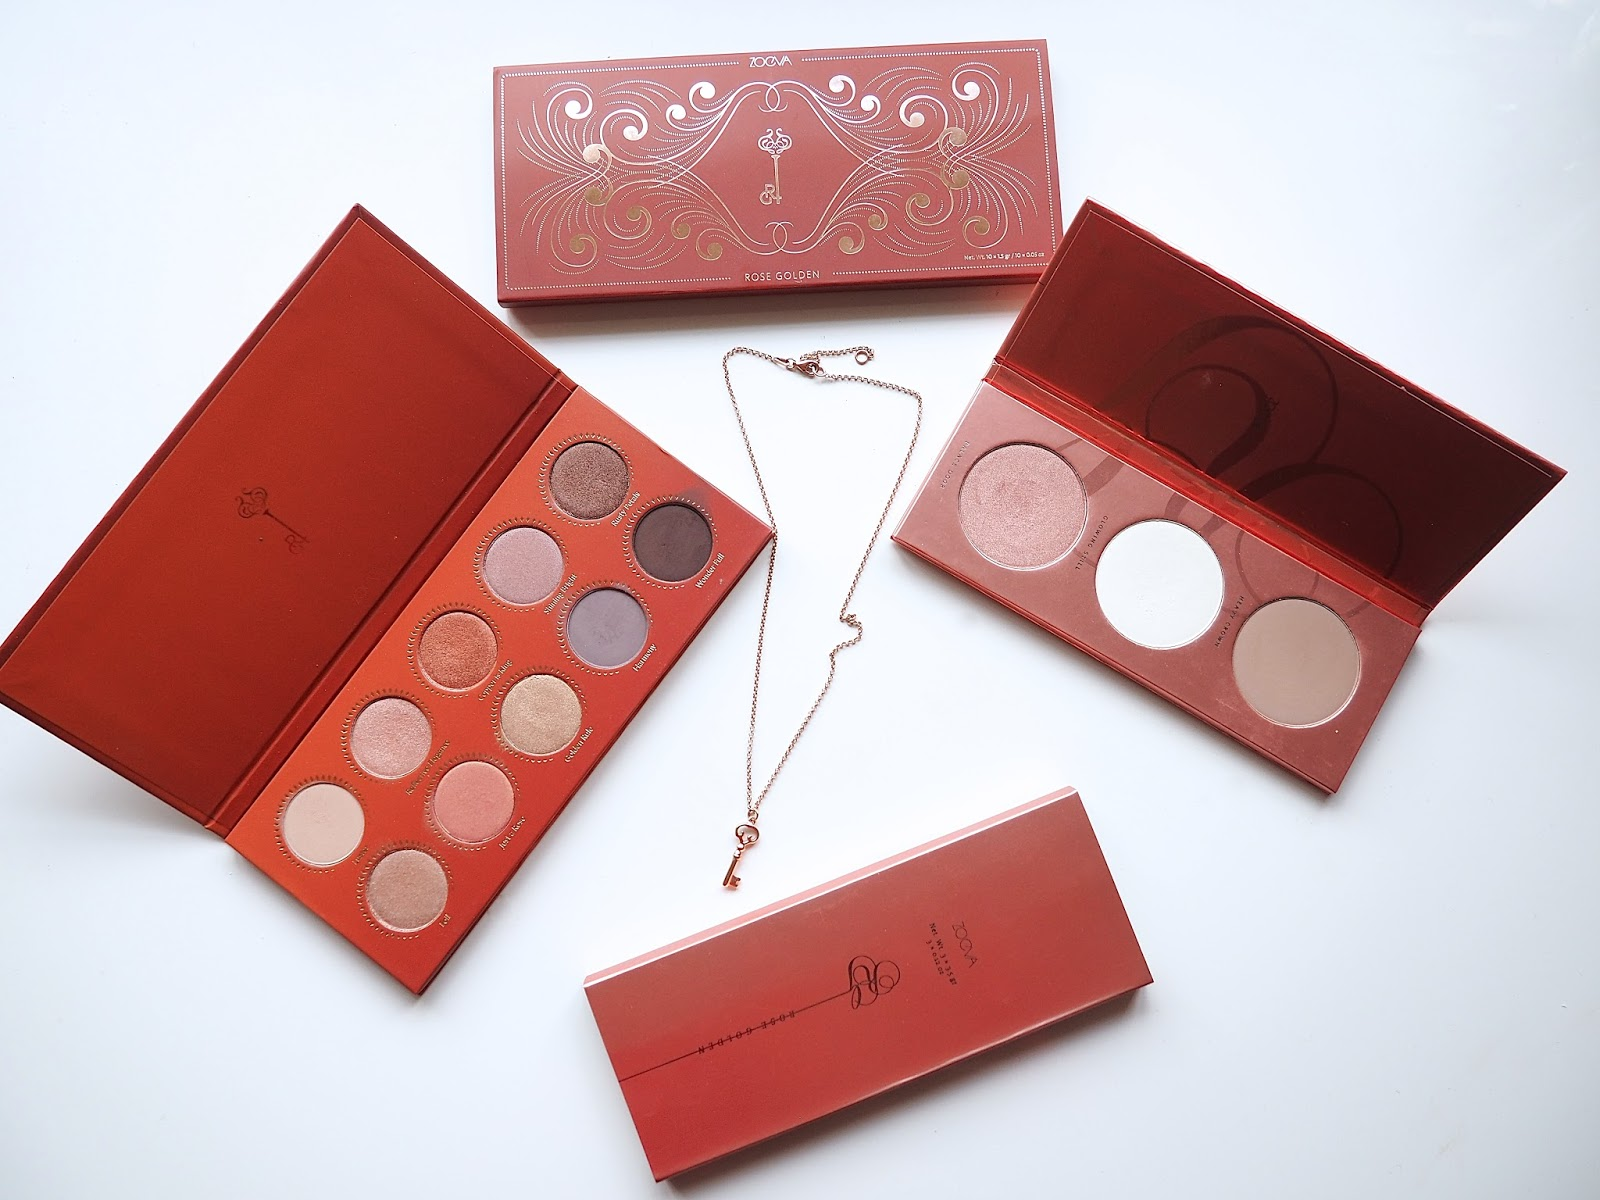 Zoeva Rose Golden Blush Palette and Eyeshadow Palette